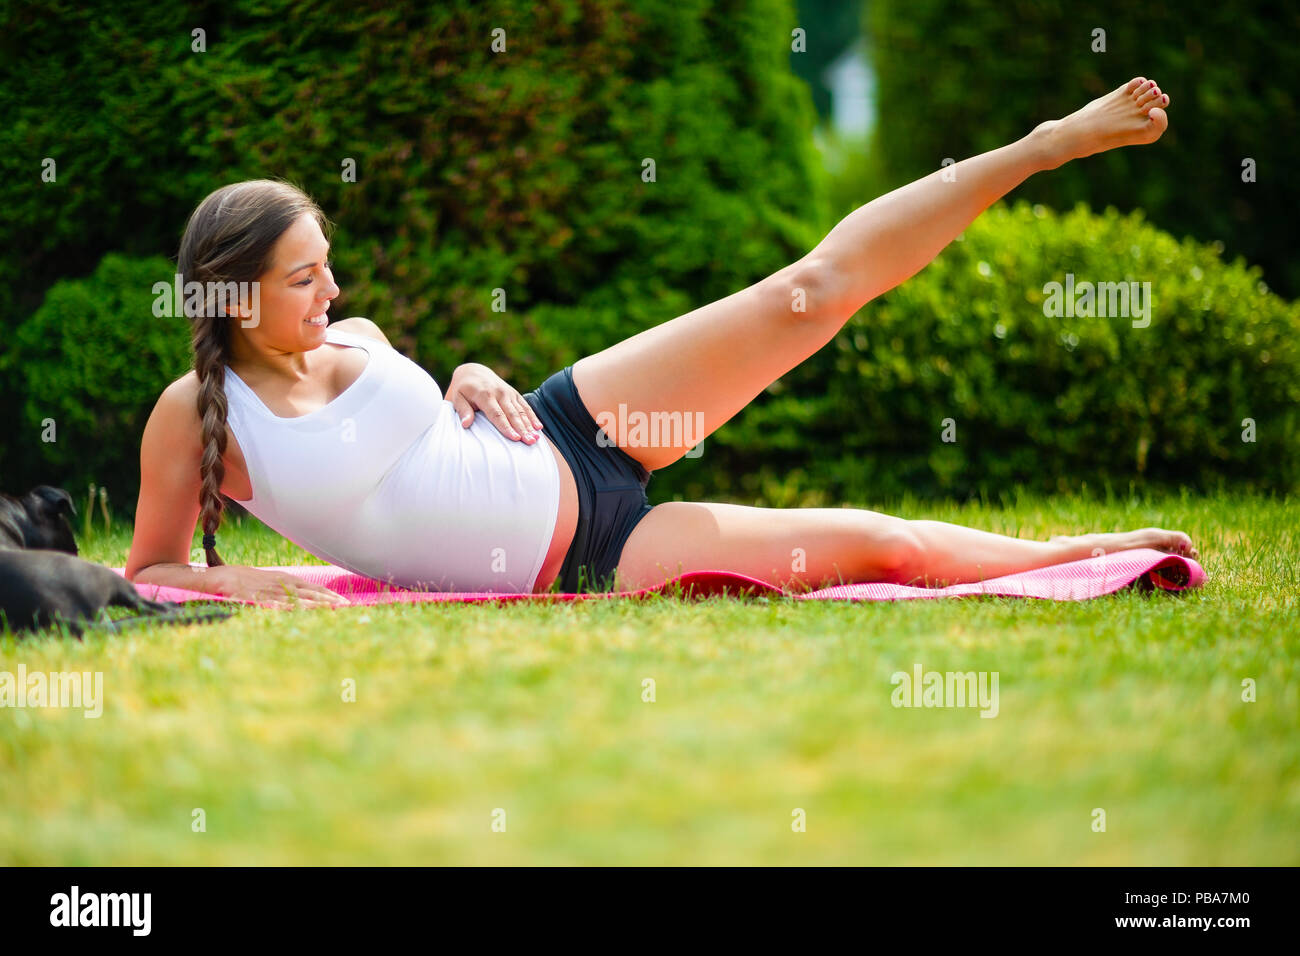 Pregnant woman performing side reclining leg lift while lying on yoga mat in park - Stock Image